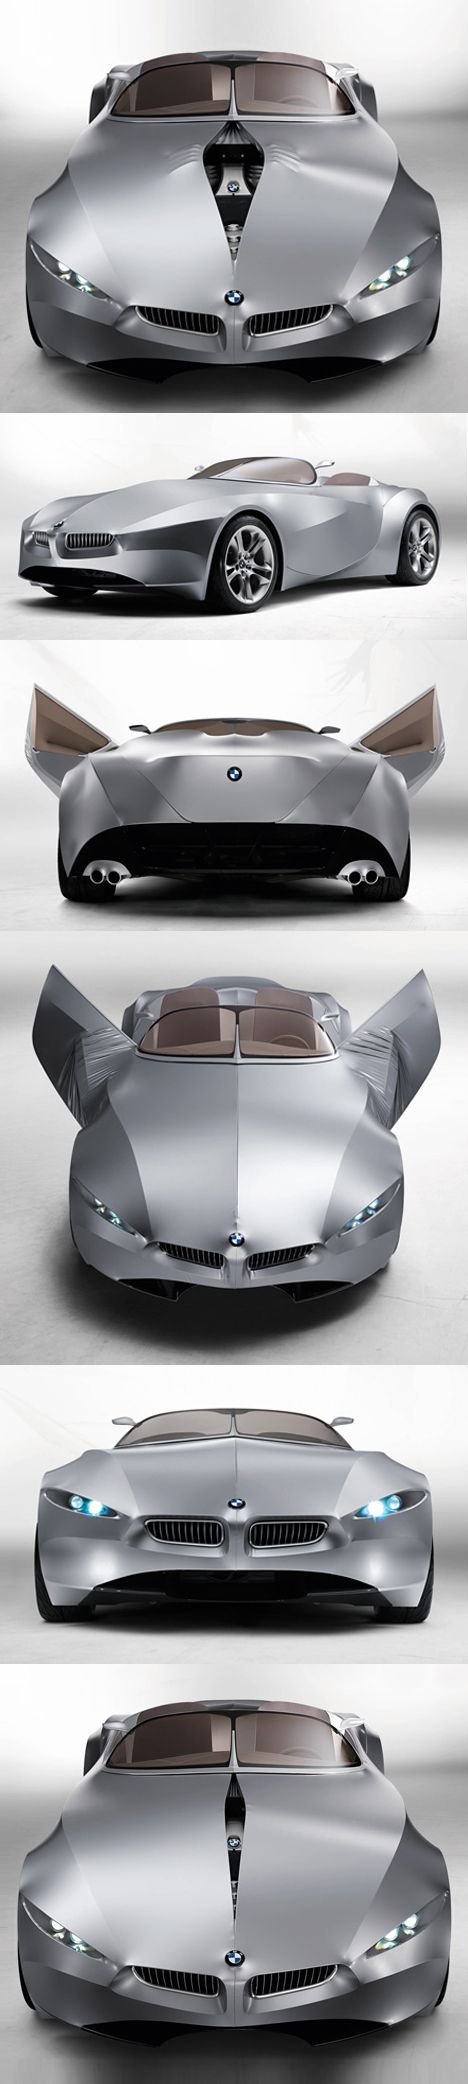 ♂ Silver car GINA Light Visionary Model by BMW http://www.dezeen.com/2008/06/11/gina-light-visionary-model-by-bmw/